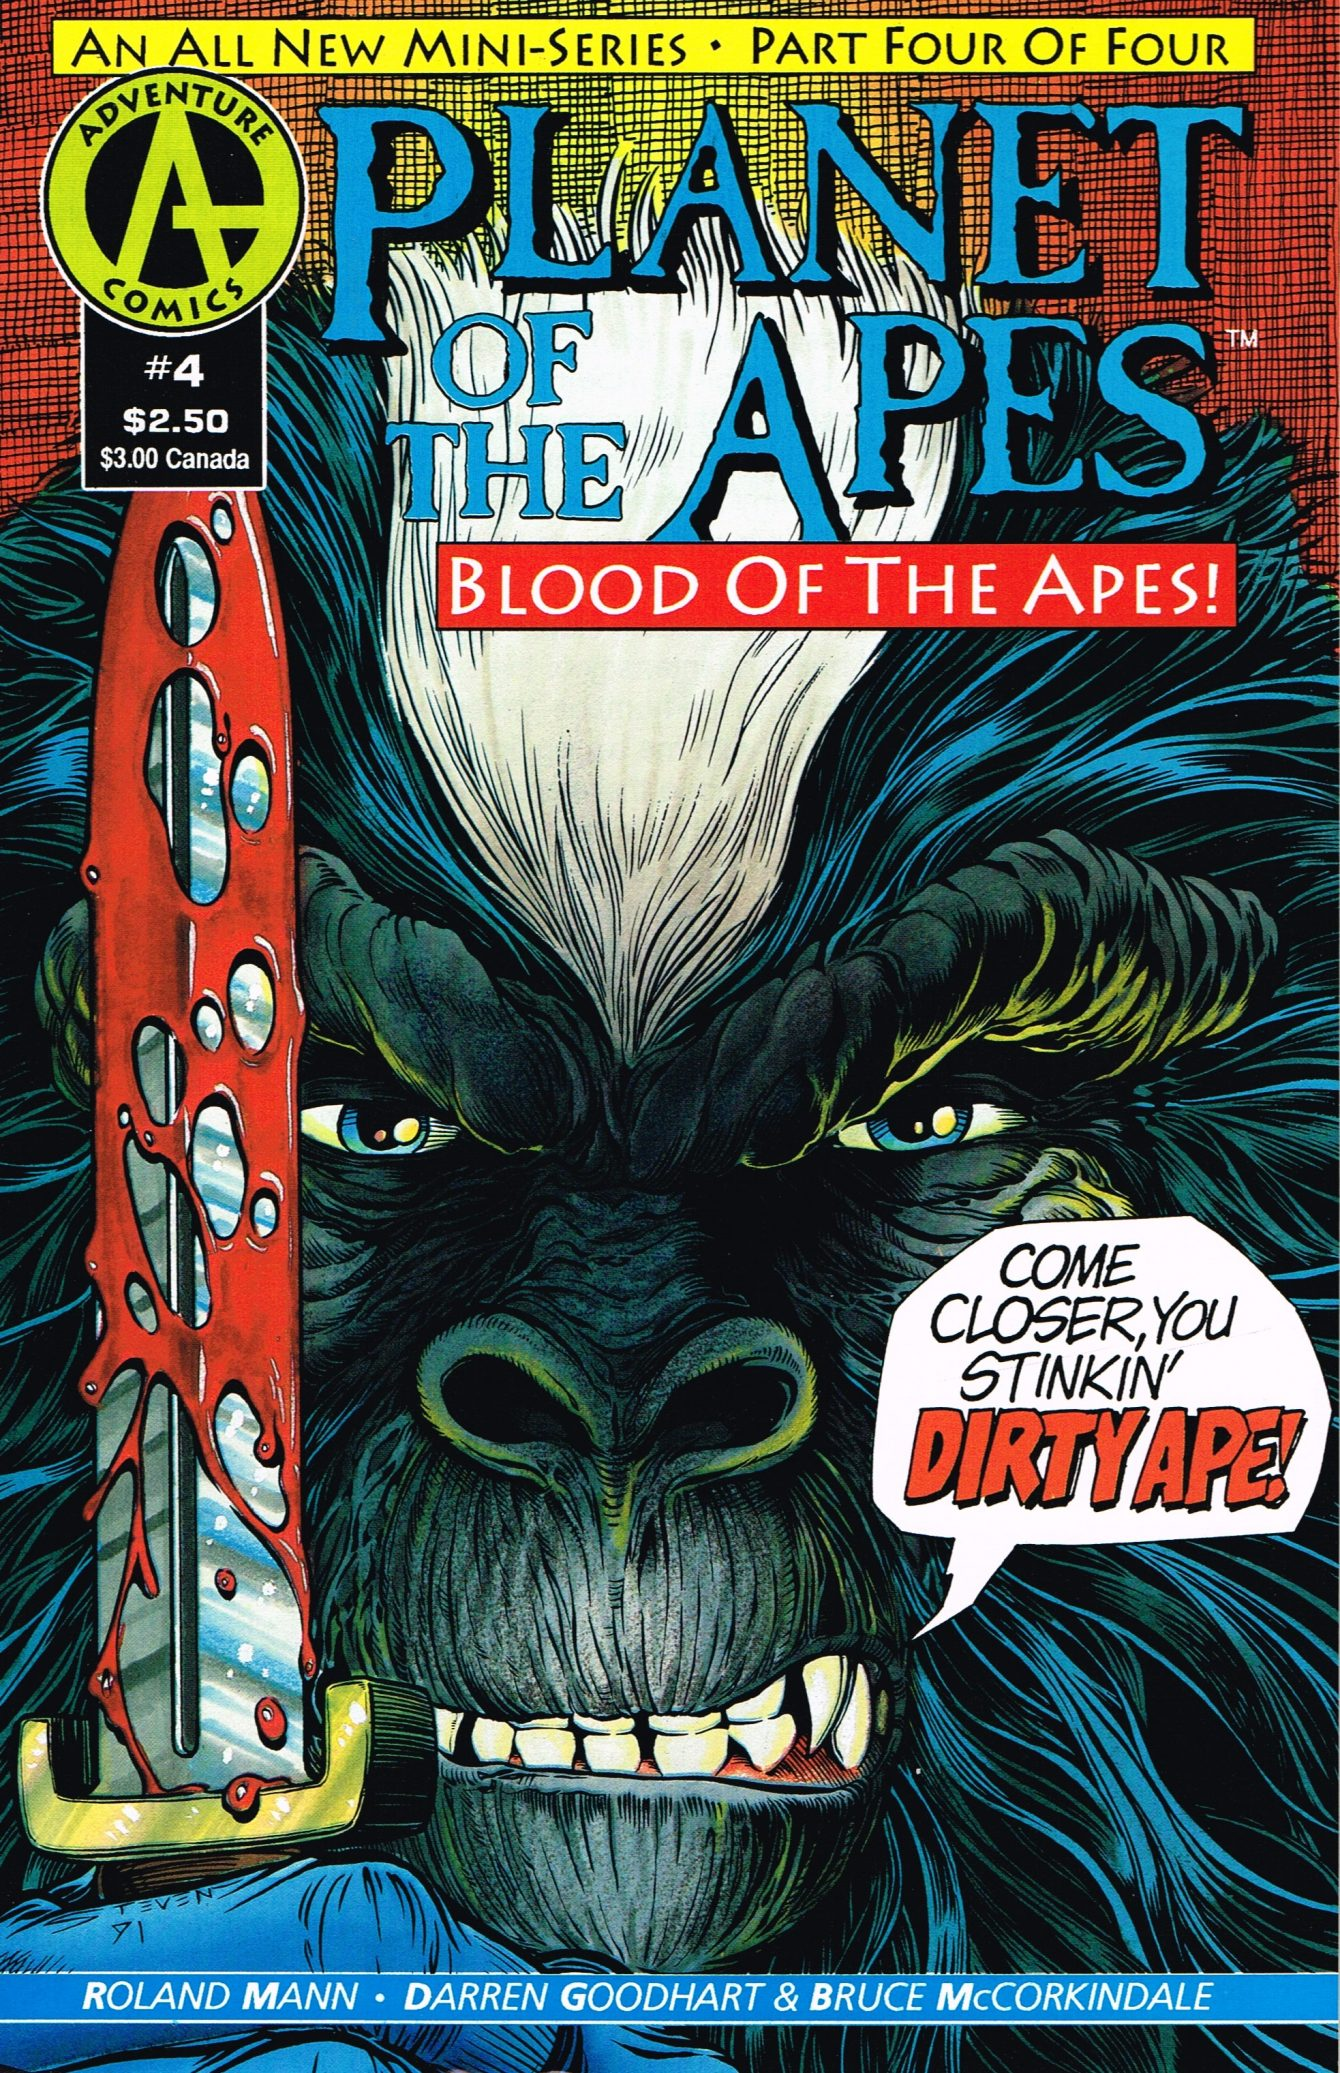 Planet of the Apes: Blood of the Apes #4